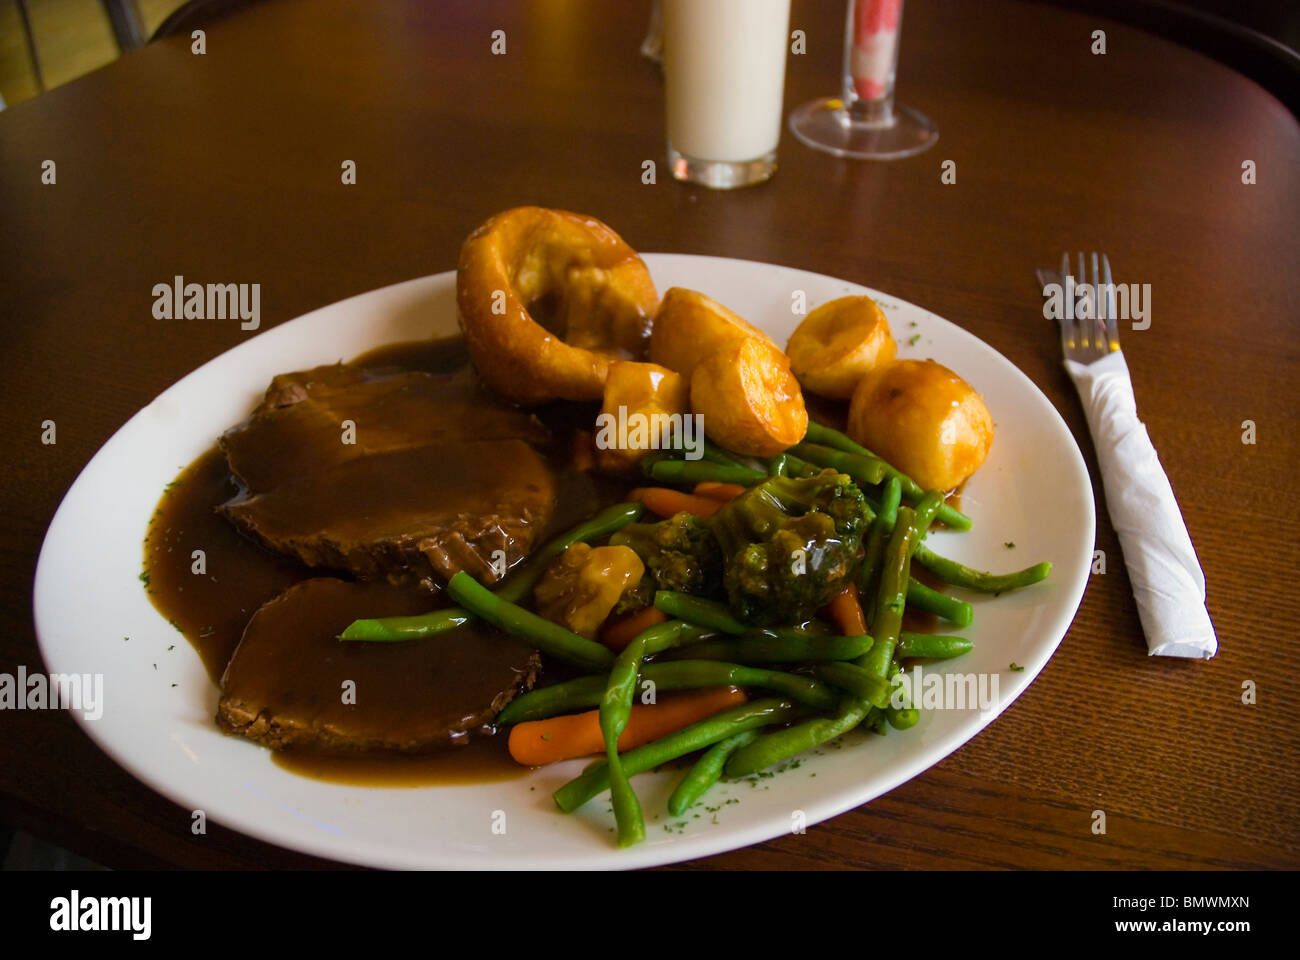 Sunday Roast with beef roasted potatoes and vegetables in a restaurant in Liverpool England UK Europe - Stock Image